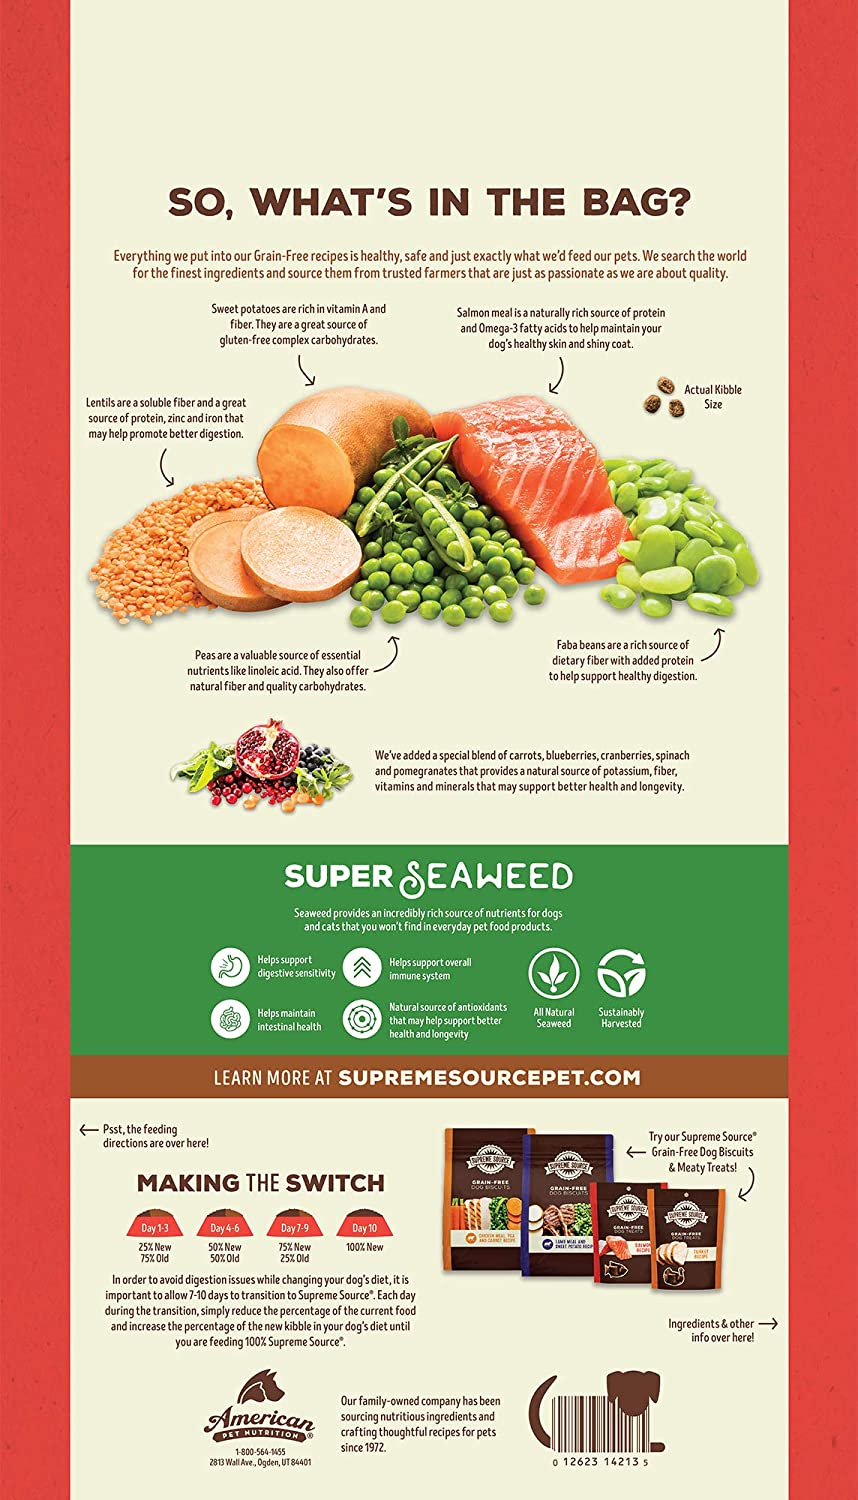 Supreme Source Premium Dry Dog Food Grain Free, USDA Organic Seaweed, Protein, Salmon and Sweet Potato Recipe for All Life Stages. Made in The USA.